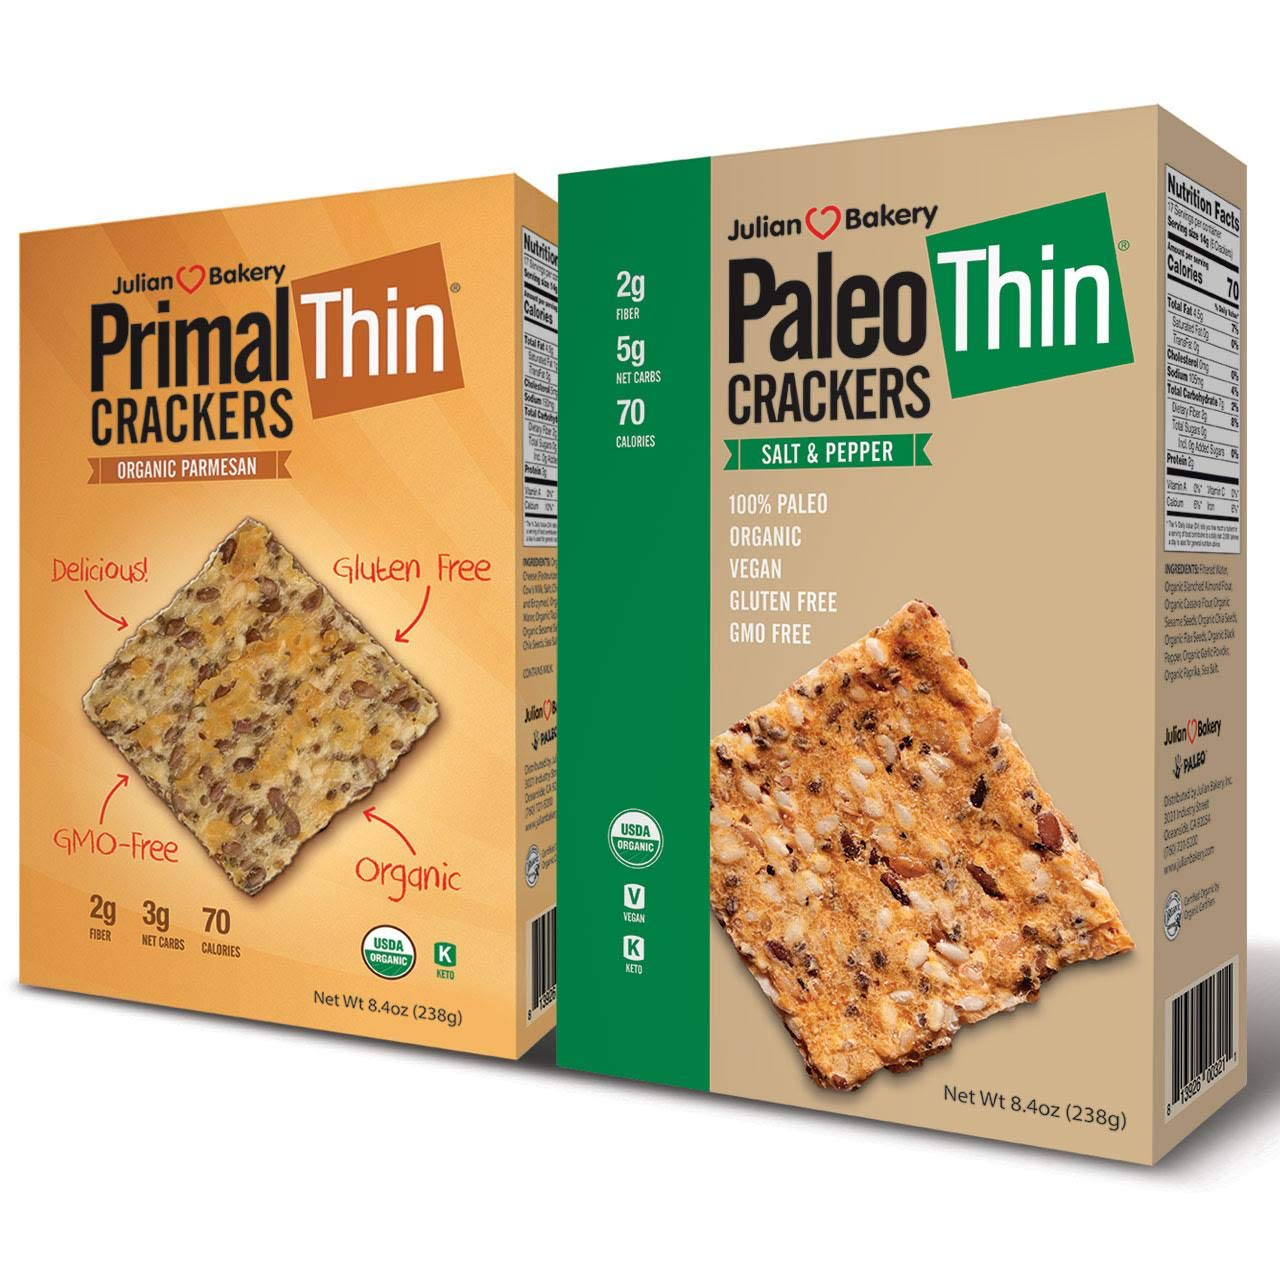 Paleo & Primal Thin Crackers) (Salt & Pepper & Parmesan) (Organic, Low Carb, Gluten Free, Grain Free)(Variety 2 Pack) Julian Bakery Inc